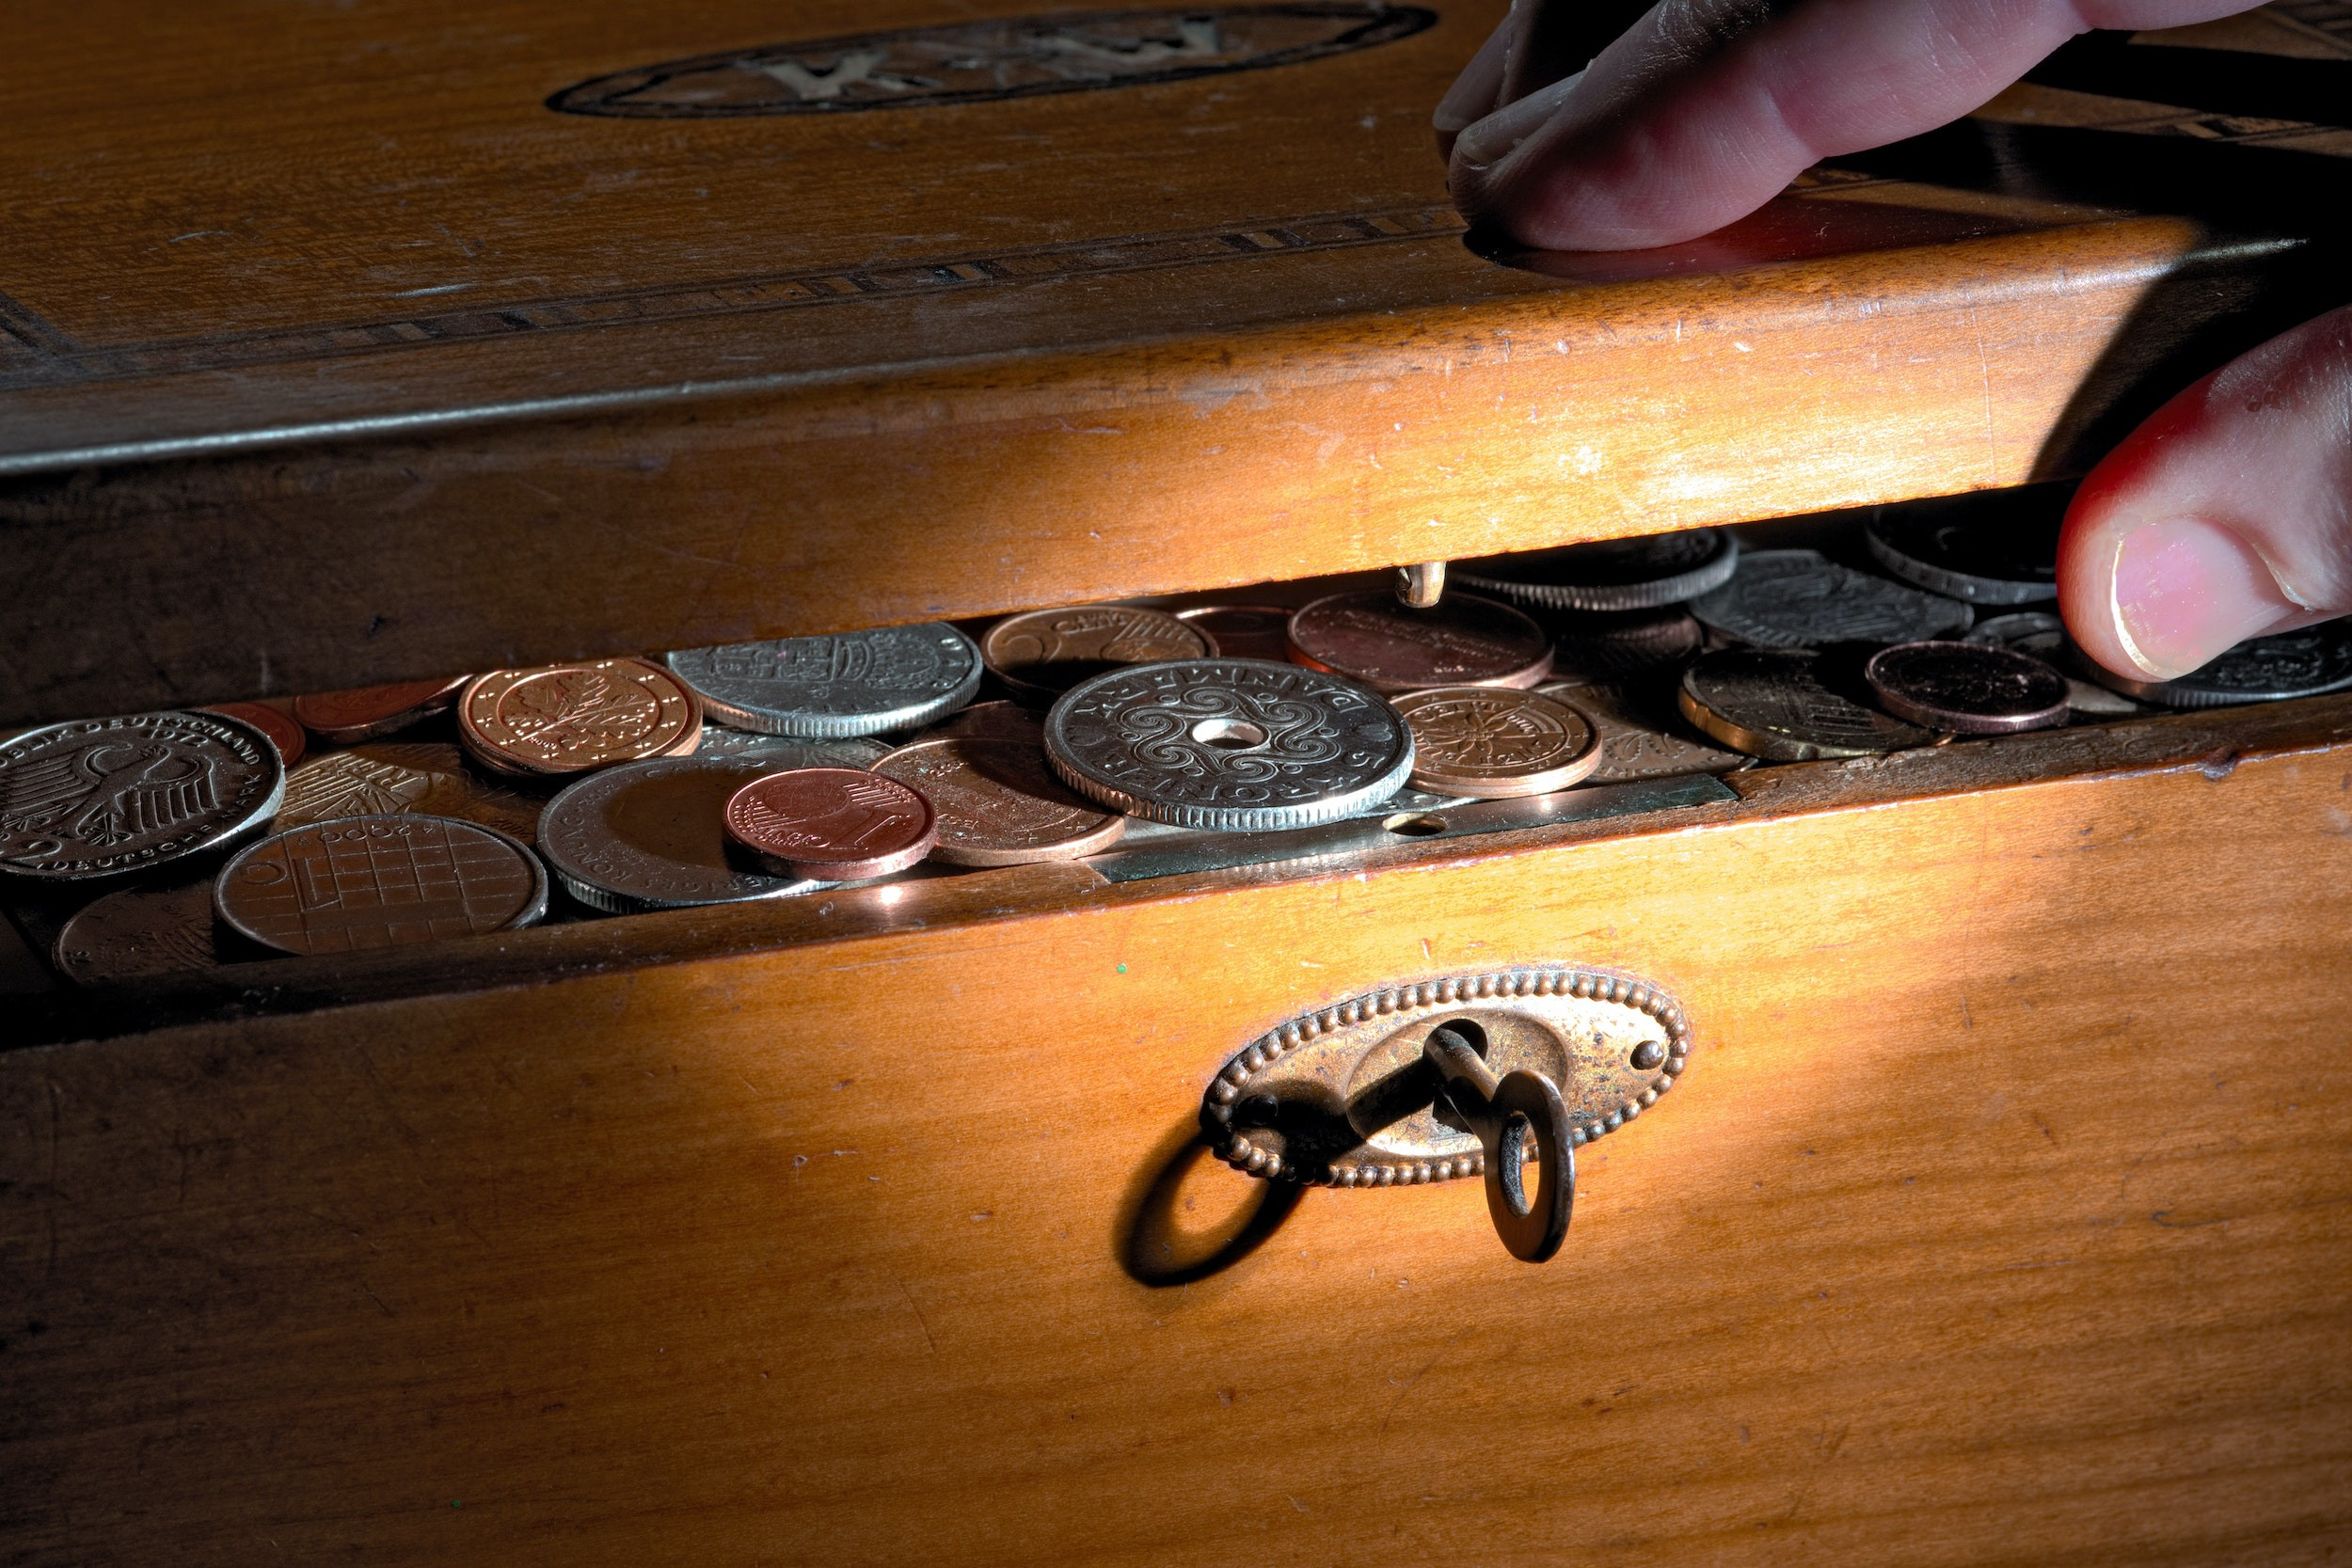 Fingers opening a wooden box with coins inside, like treasure